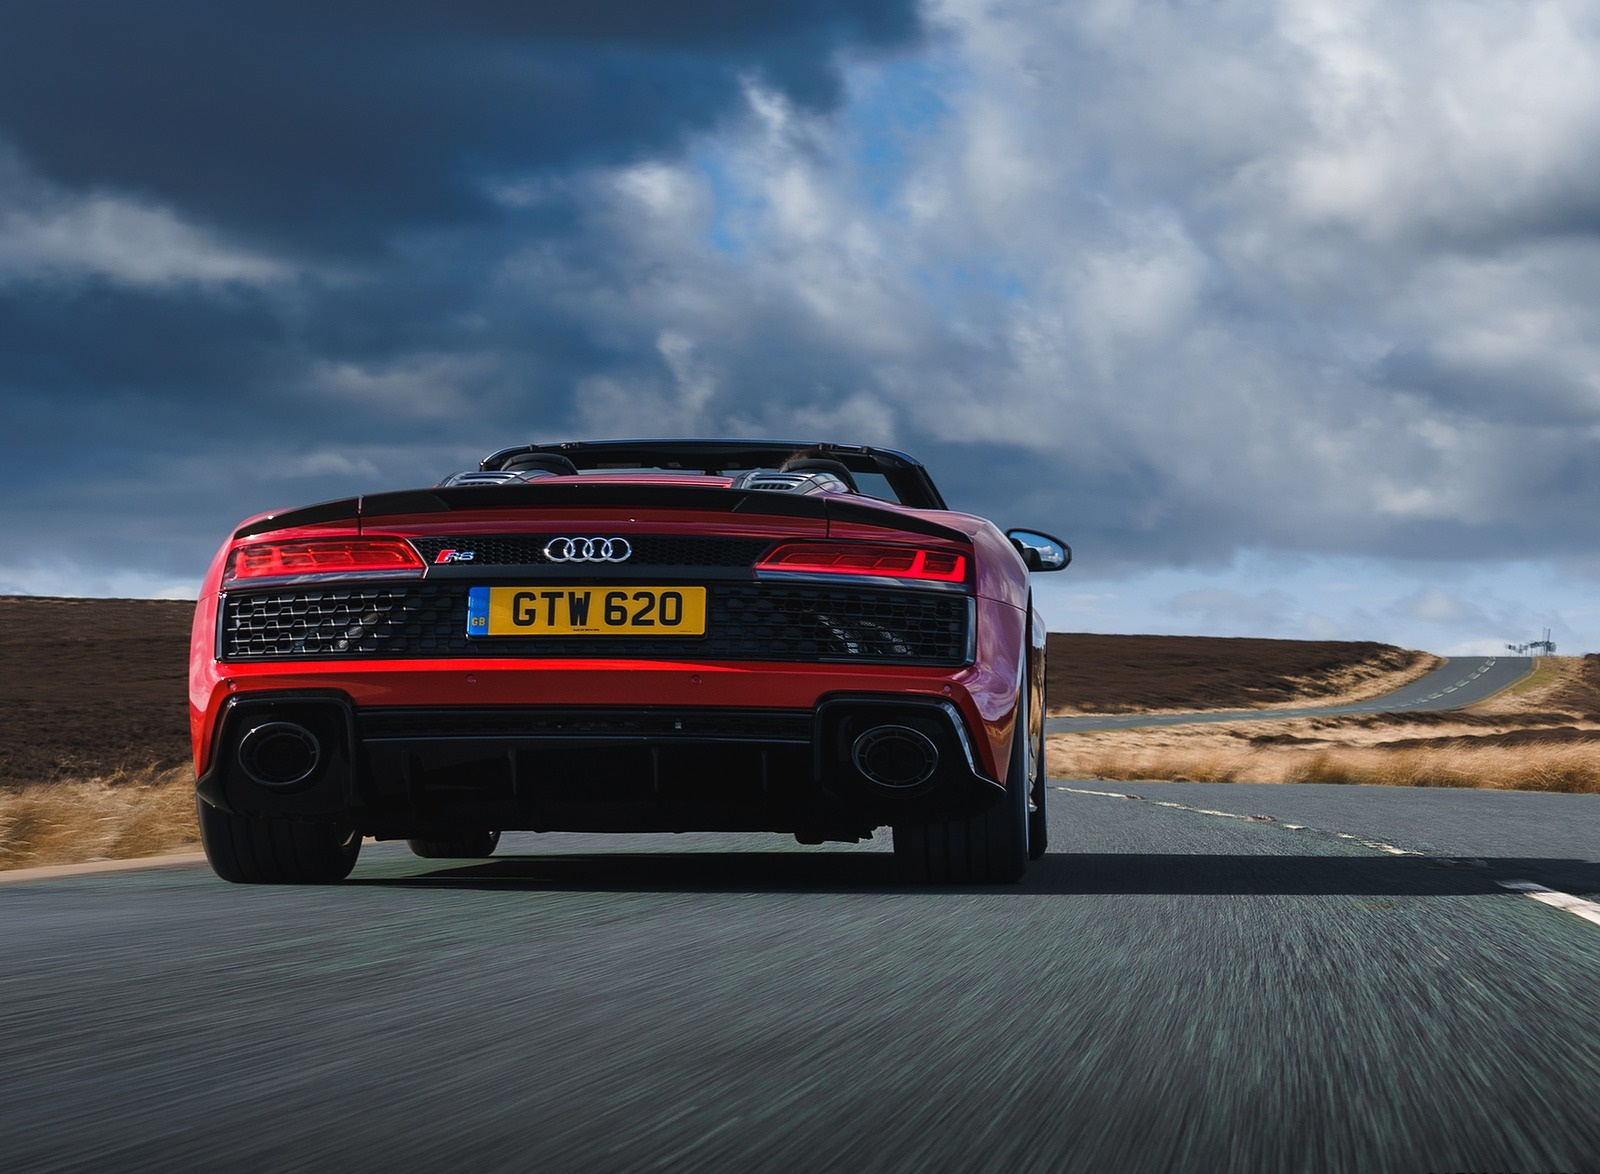 2019 Audi R8 V10 Spyder Performance quattro (UK-Spec) Rear Wallpapers (9)